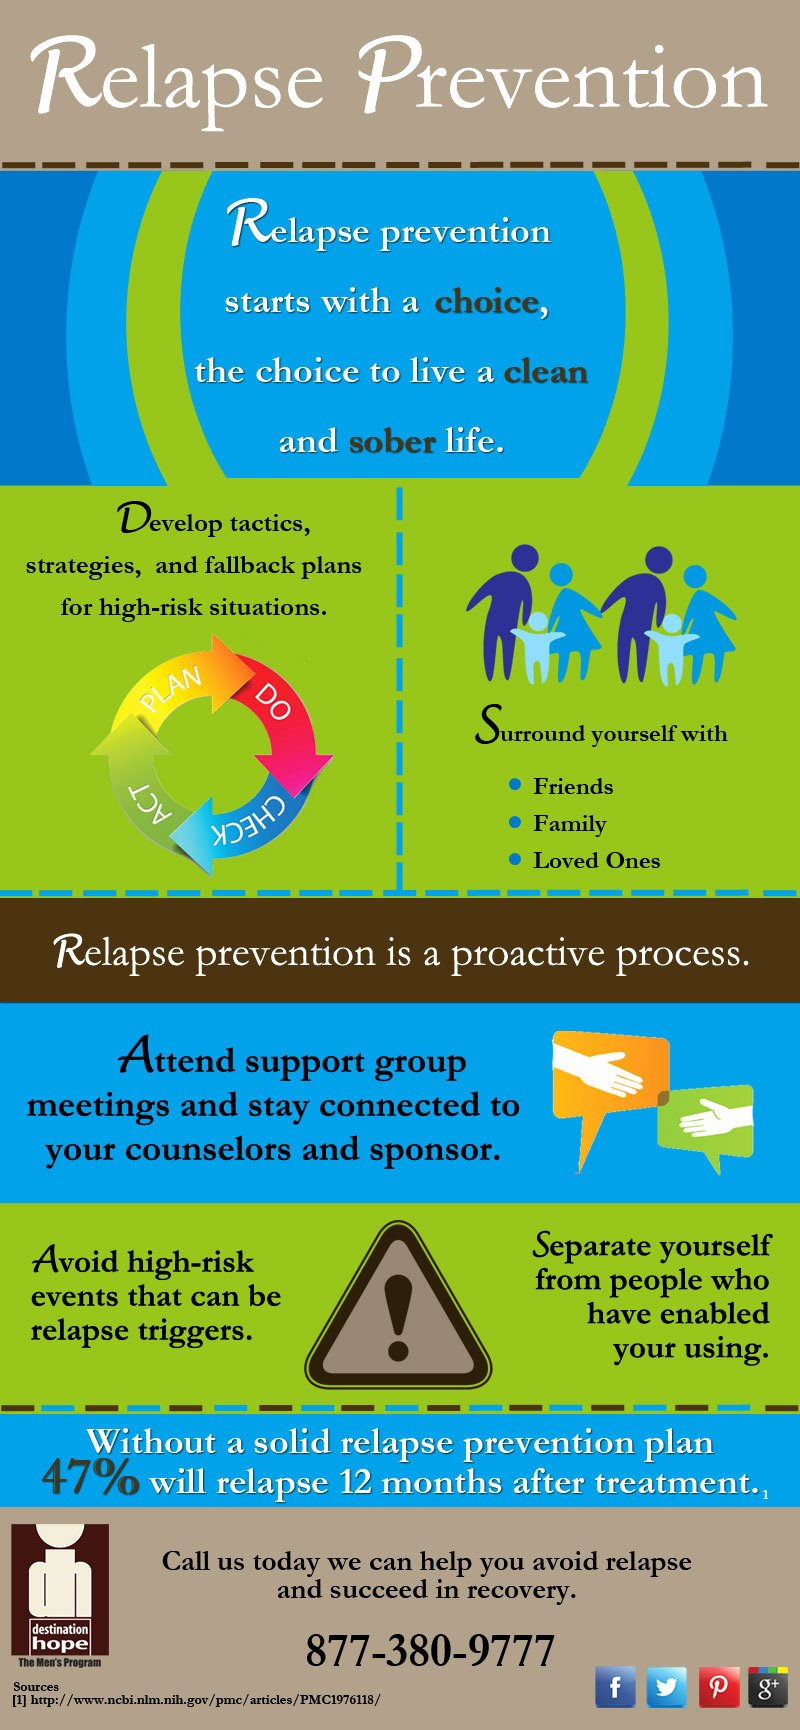 Relapse Prevention Plan Template Pdf Beautiful 1000 Ideas About Relapse Prevention On Pinterest